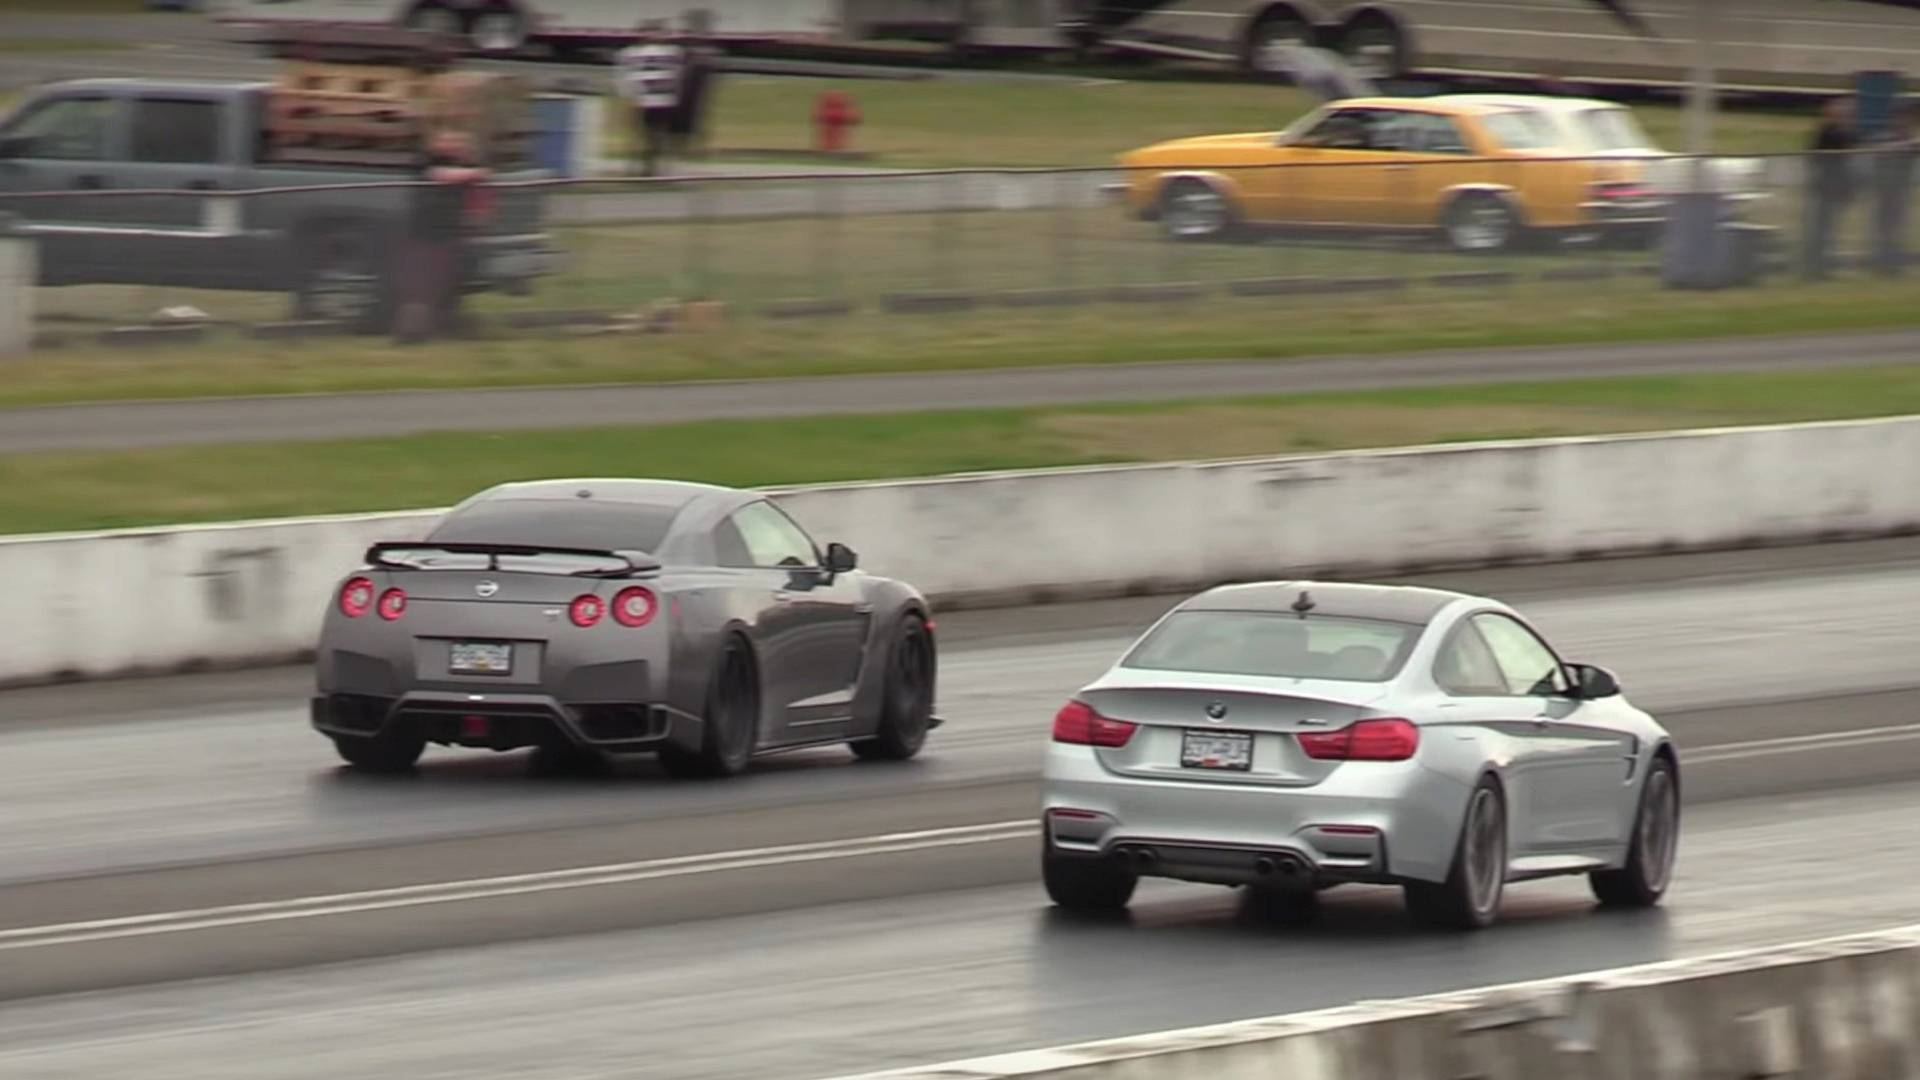 Place your bets nissan gt r vs bmw m4 drag race